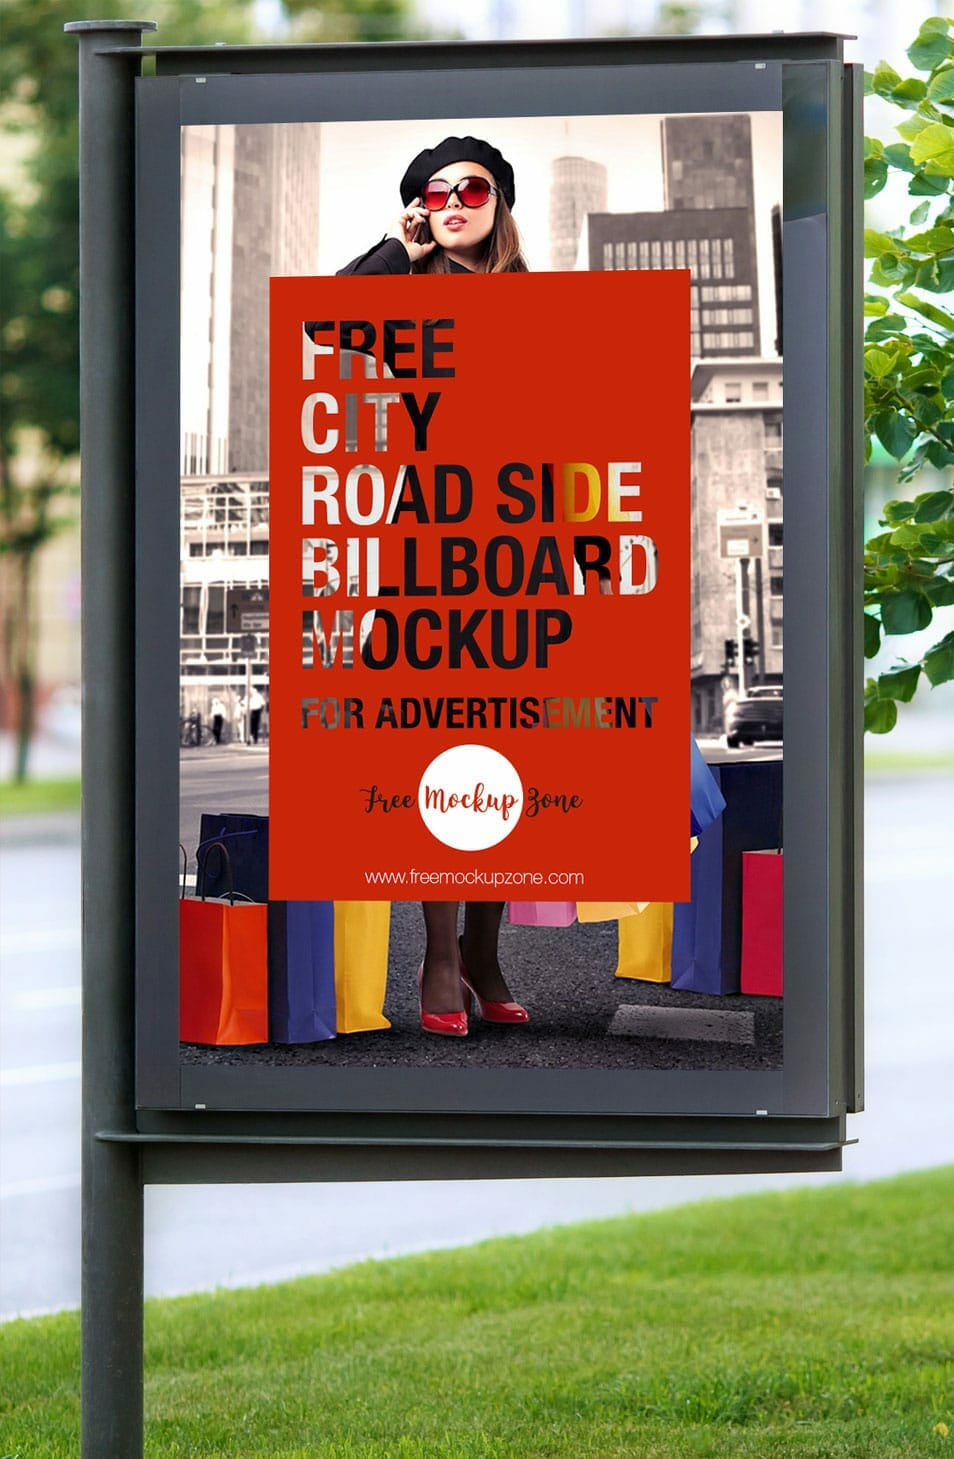 Free City Road Side Billboard Mockup